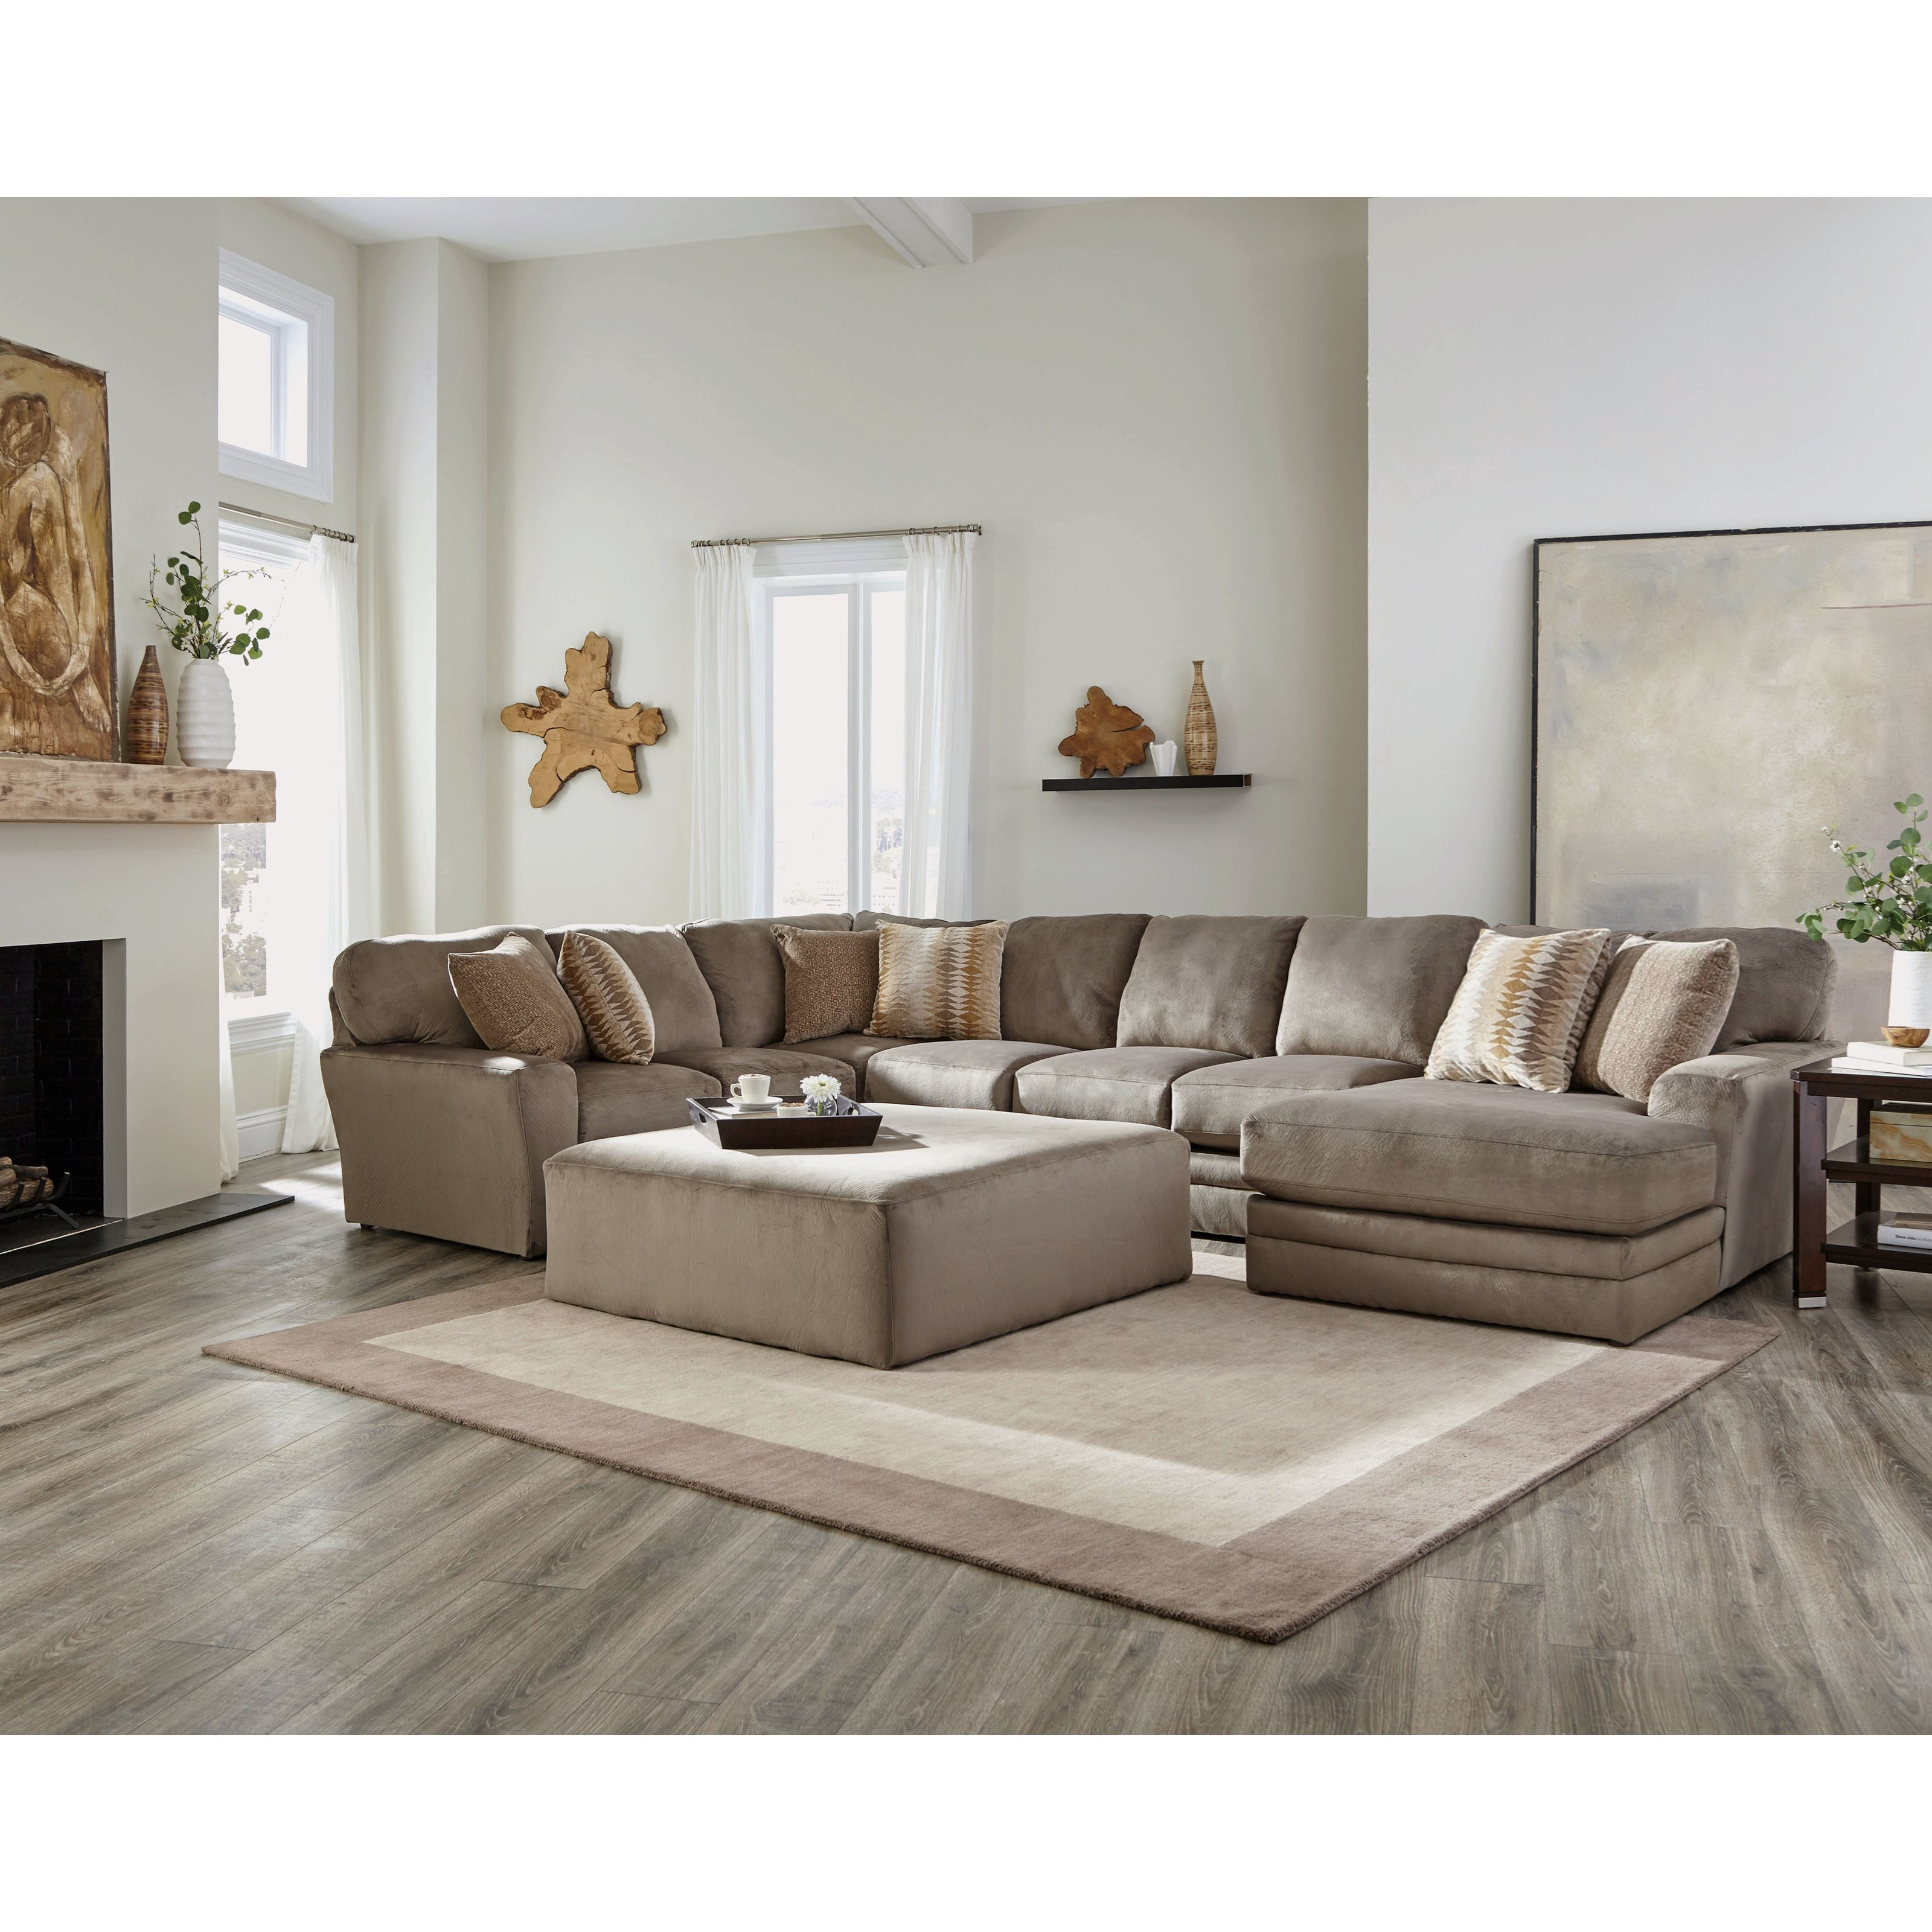 Everest 3 Piece Sectional by Jackson Furniture at Northeast Factory Direct